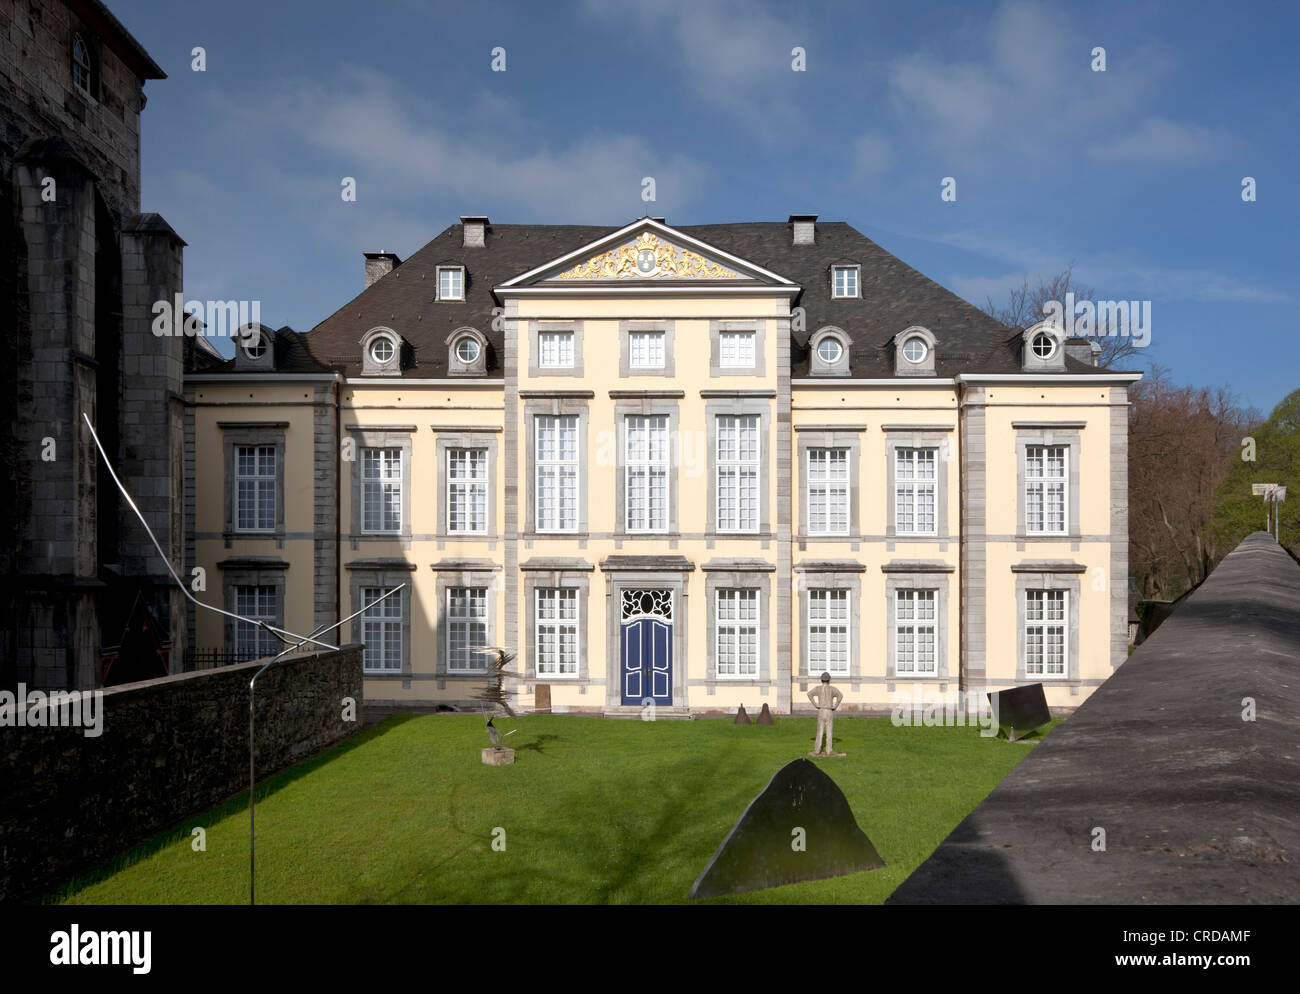 Imperial Abbey of Kornelimuenster, art collection of NRW, Aachen, North Rhine-Westphalia, Germany, Europe, PublicGround - Stock Image